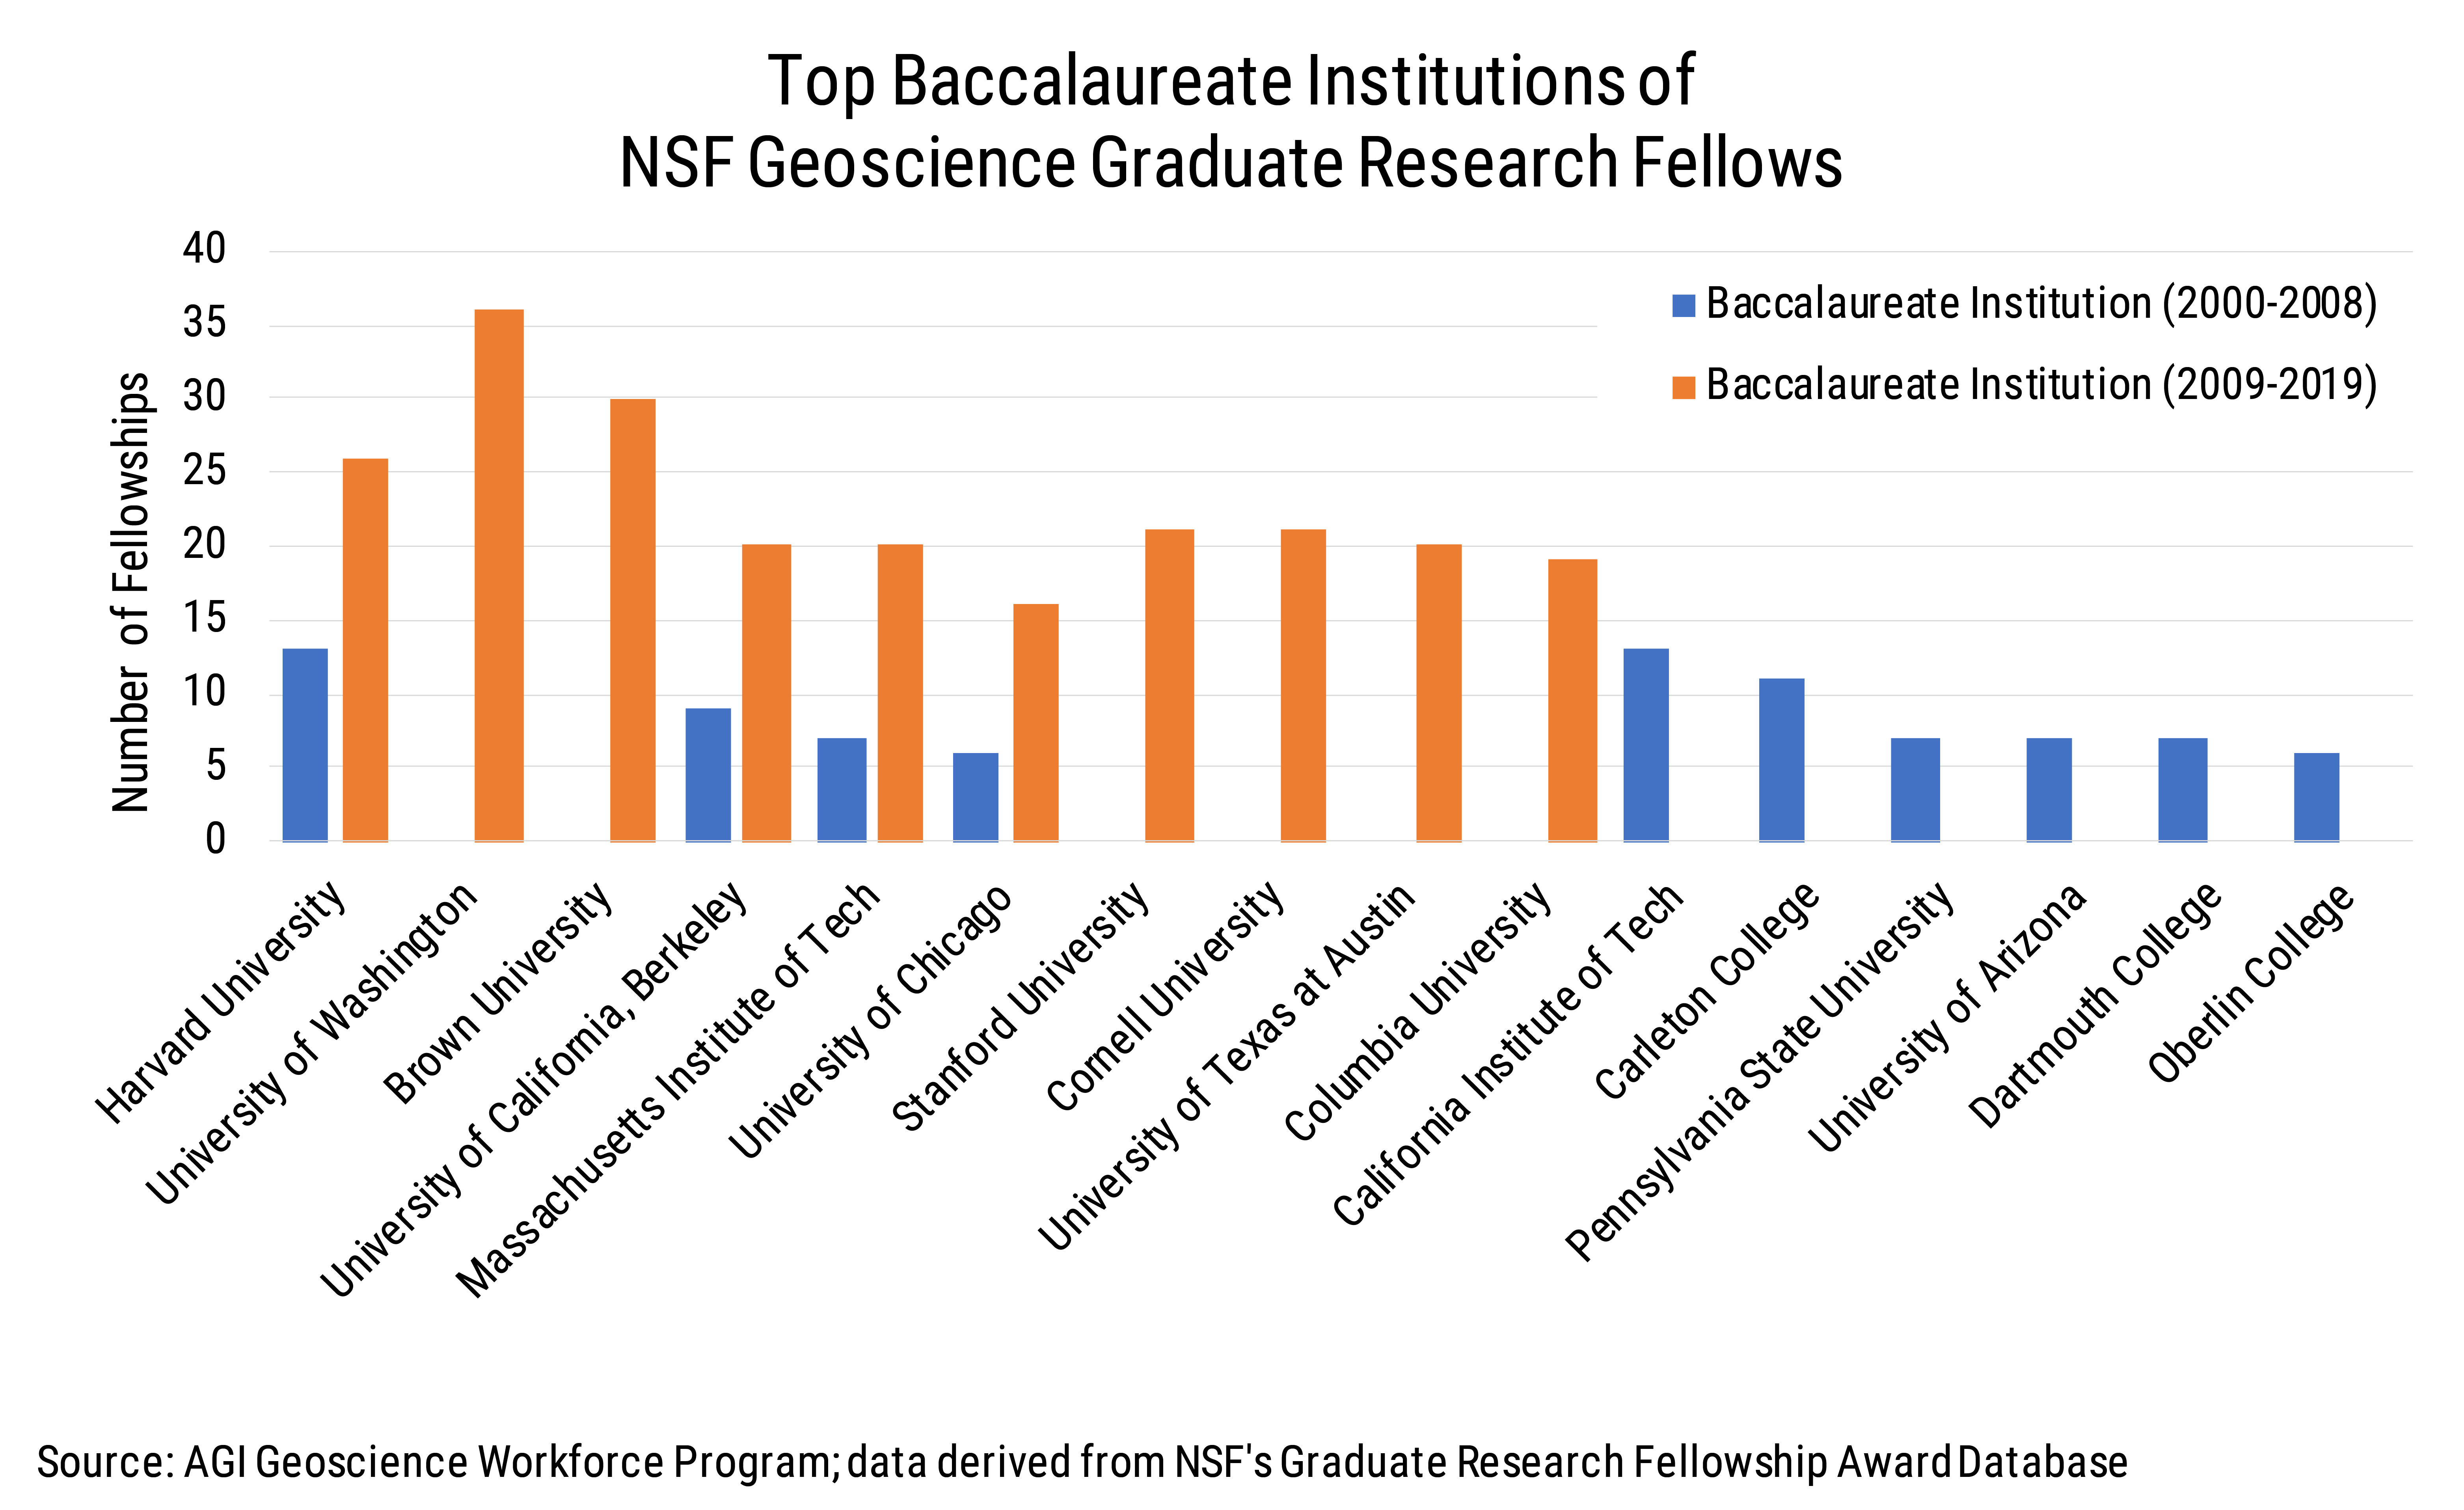 Data Brief 2009-009 chart04: Top Baccalaureate Institutions of NSF Geoscience Graduate Research Fellows